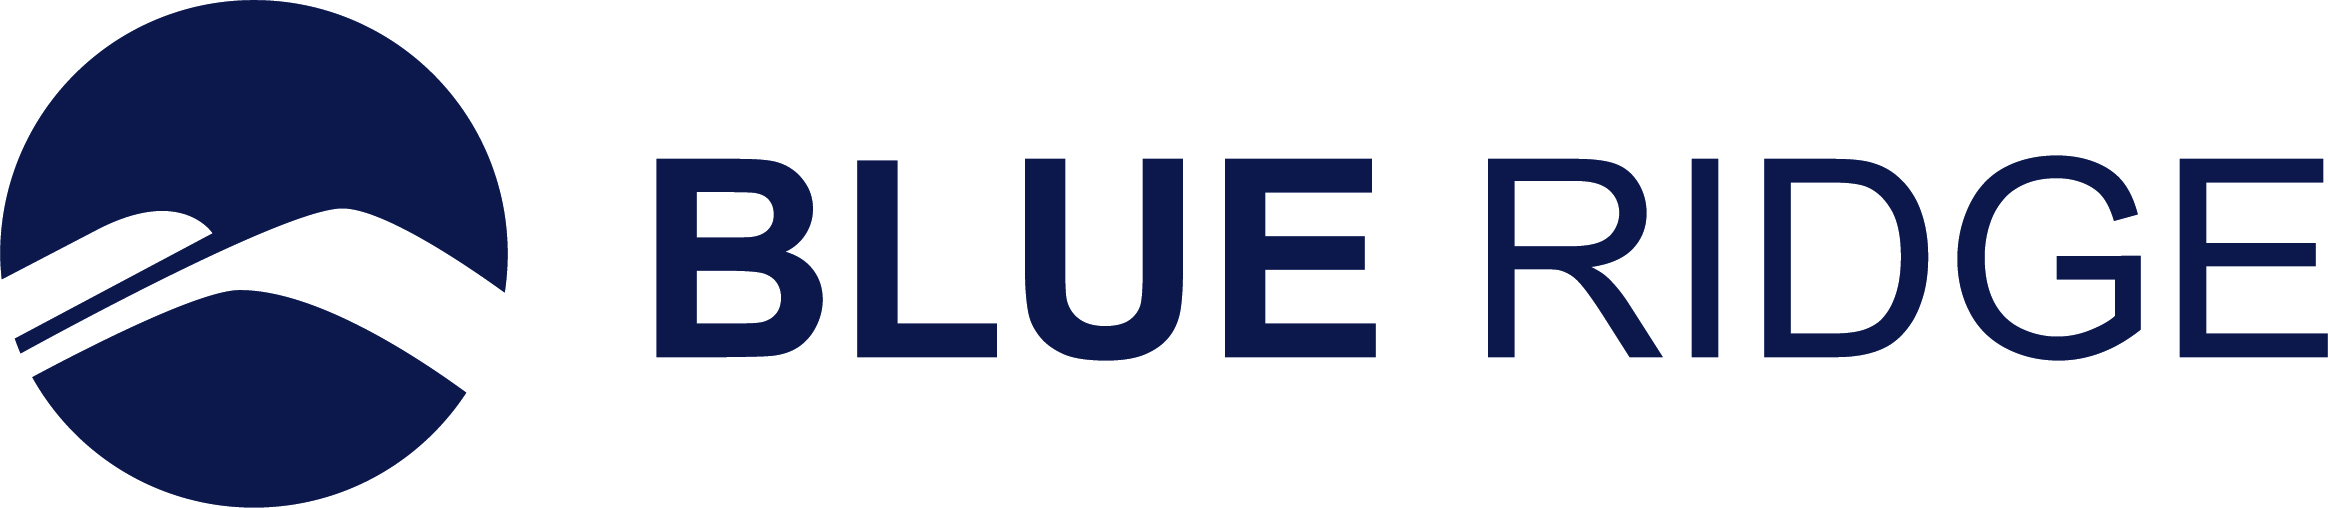 Servicegrossistene AS and Blue Ridge Form Partnership to Improve Forecast Accuracy and Supply Chain Planning